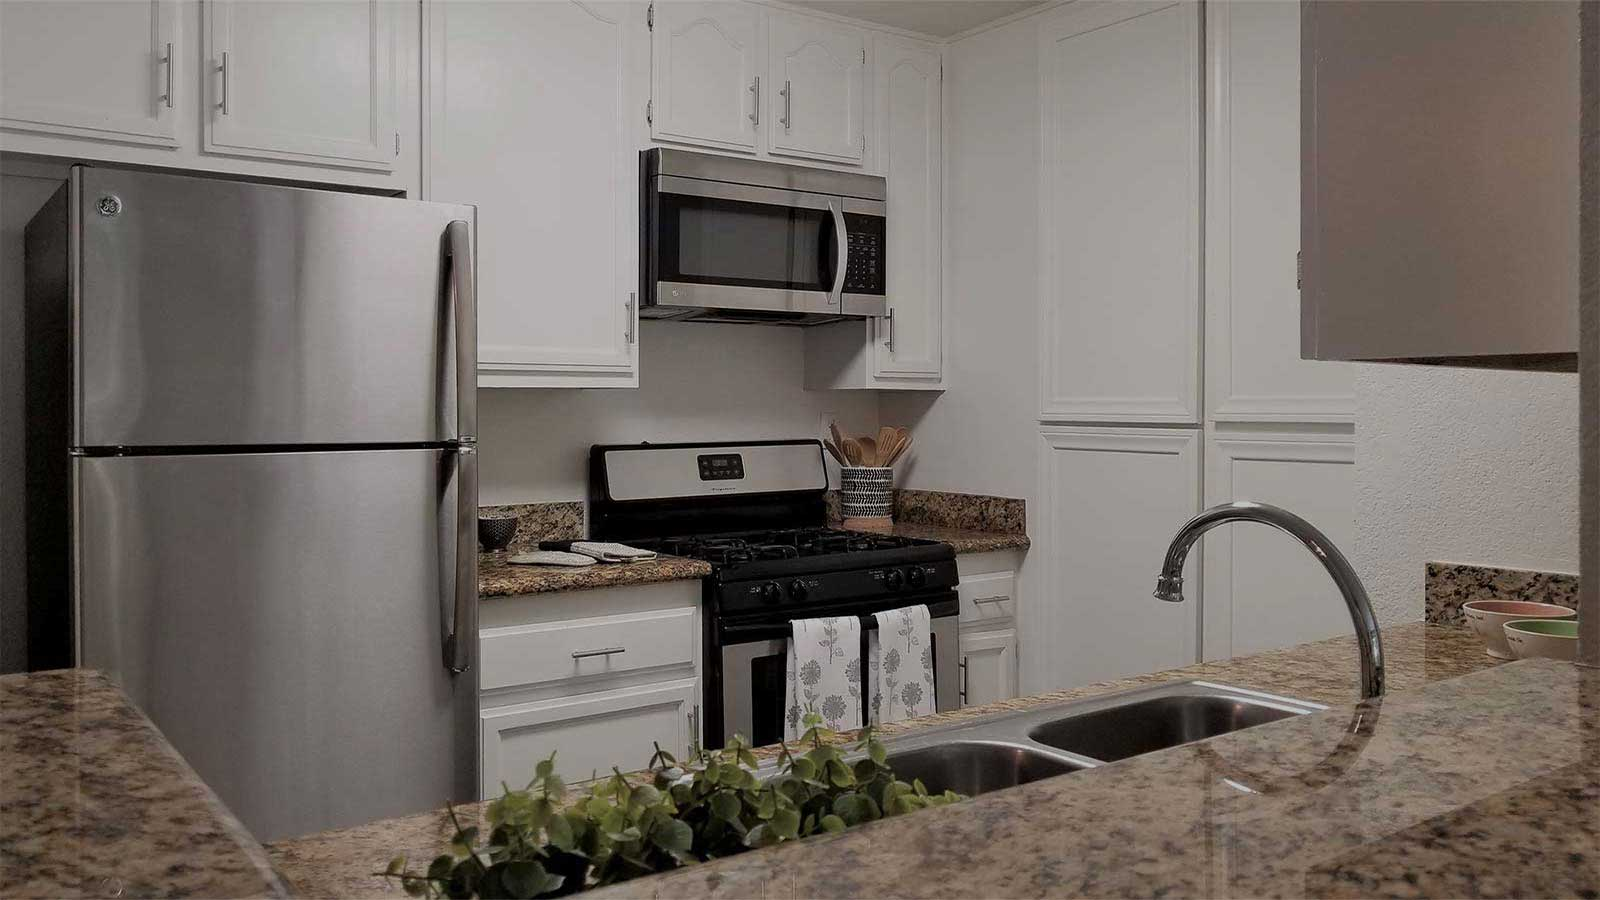 Paramount Terrace Apartment kitchen interior